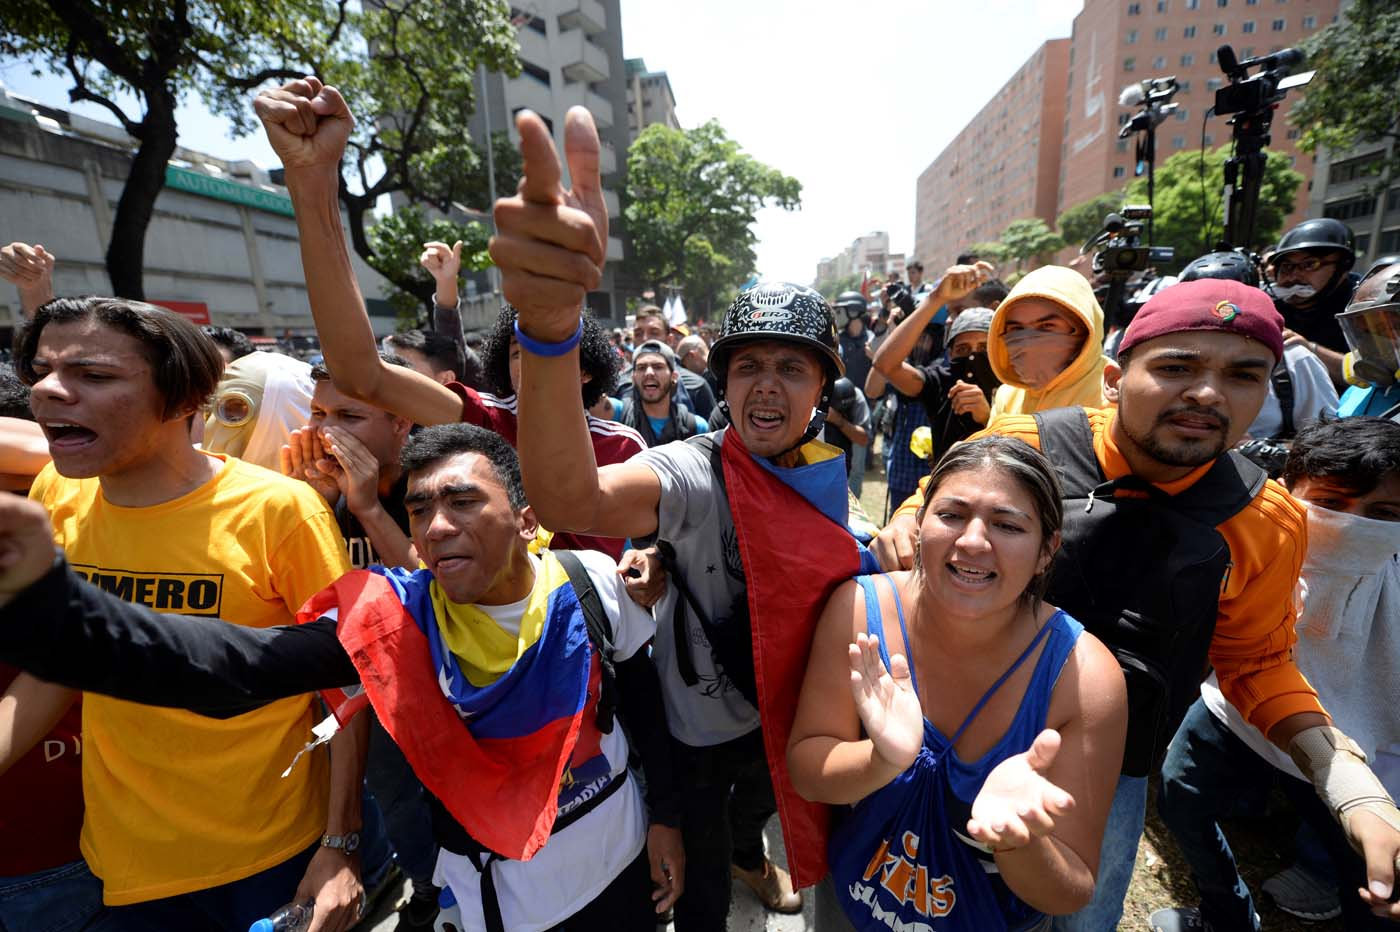 Venezuelan opposition activists demonstrate during a protest in Caracas on April 4, 2017. Venezuela has been mired in turmoil since the Supreme Court last week tried to tighten Maduro